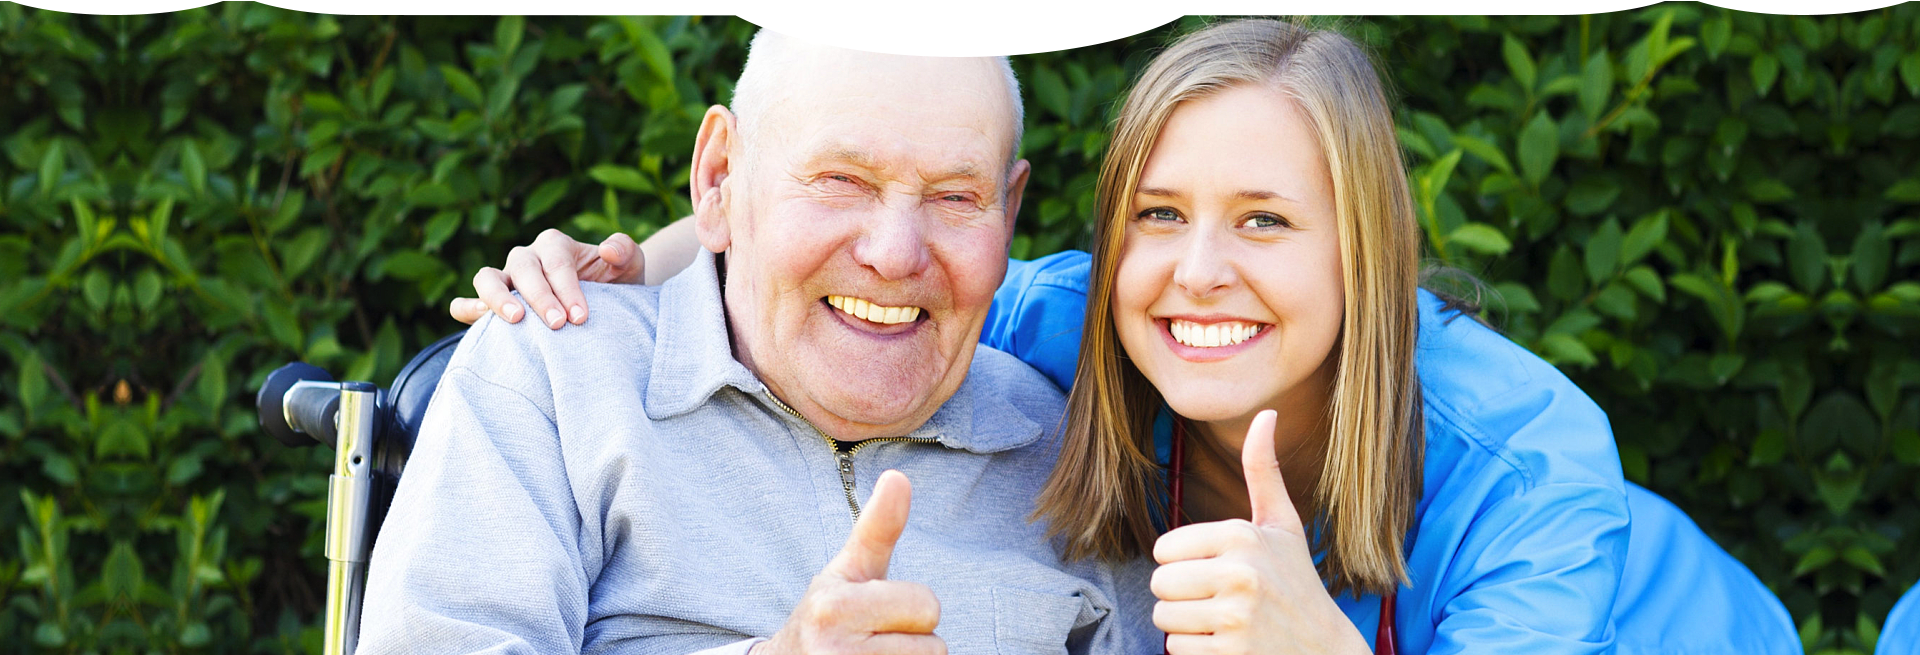 caregiver and patient doing a OK sign